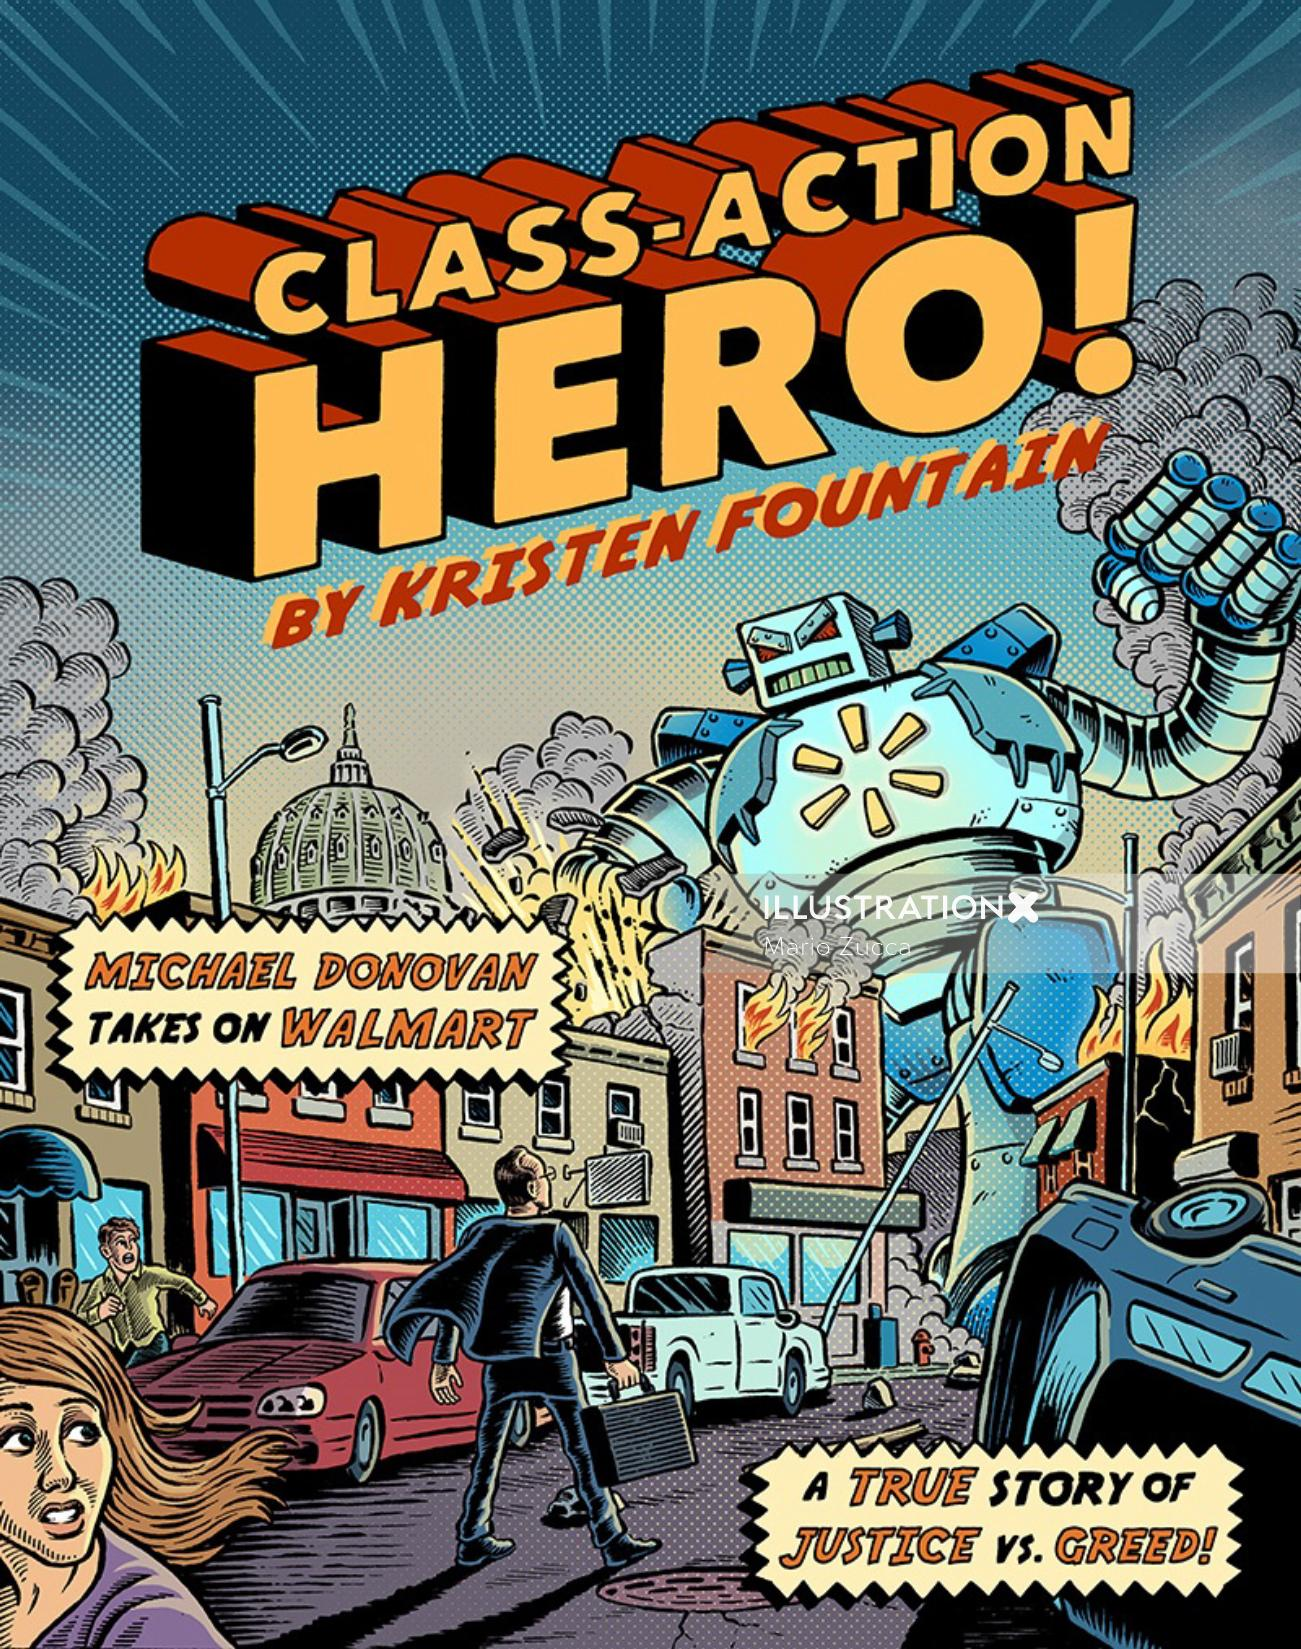 Character illustration of Class-Action hero